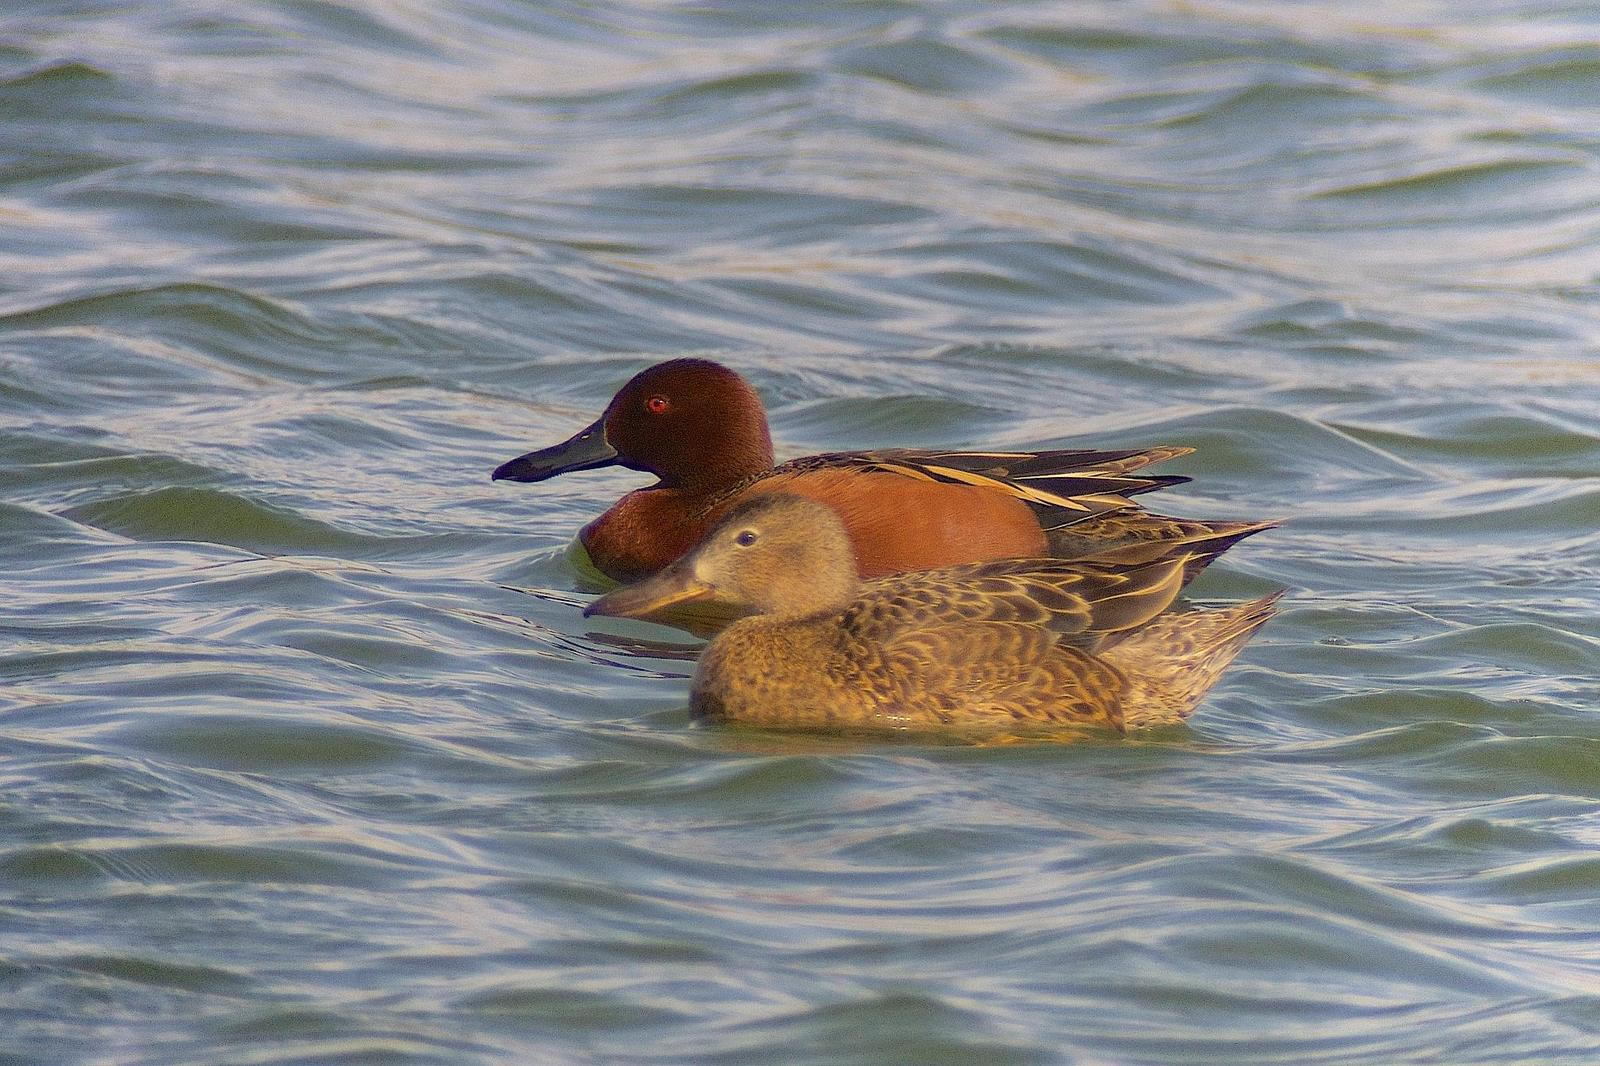 Cinnamon Teal Photo by Gerald Hoekstra